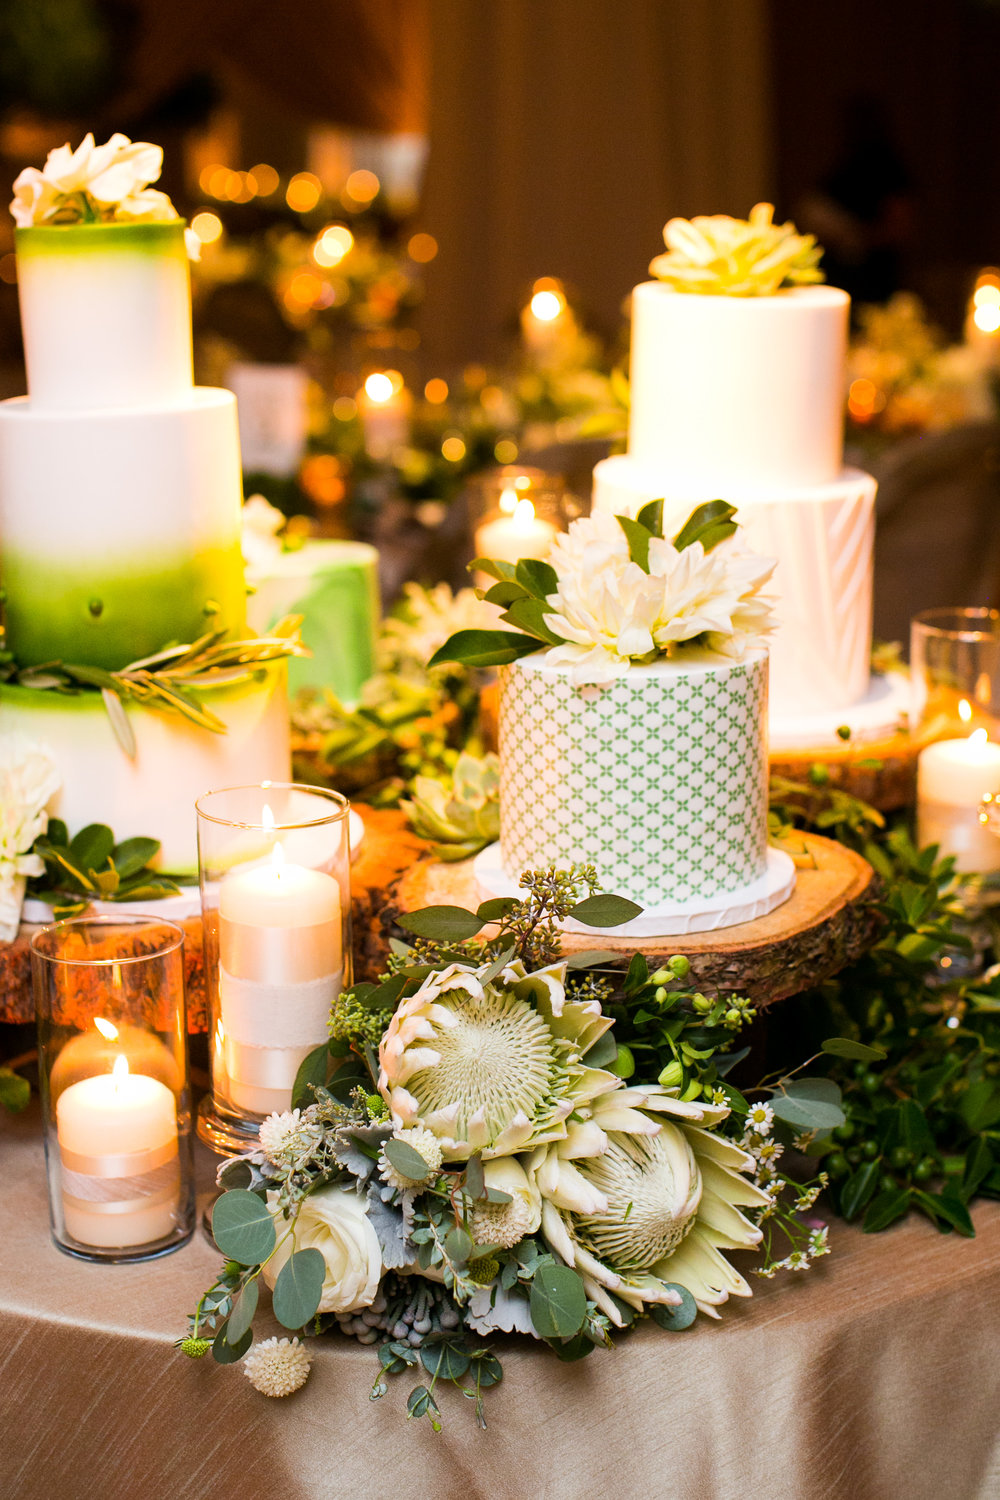 www.santabarbarawedding.com | Four Seasons Santa Barbara | Levine Fox Events | Callaway Gable Photo | Wedding Cakes